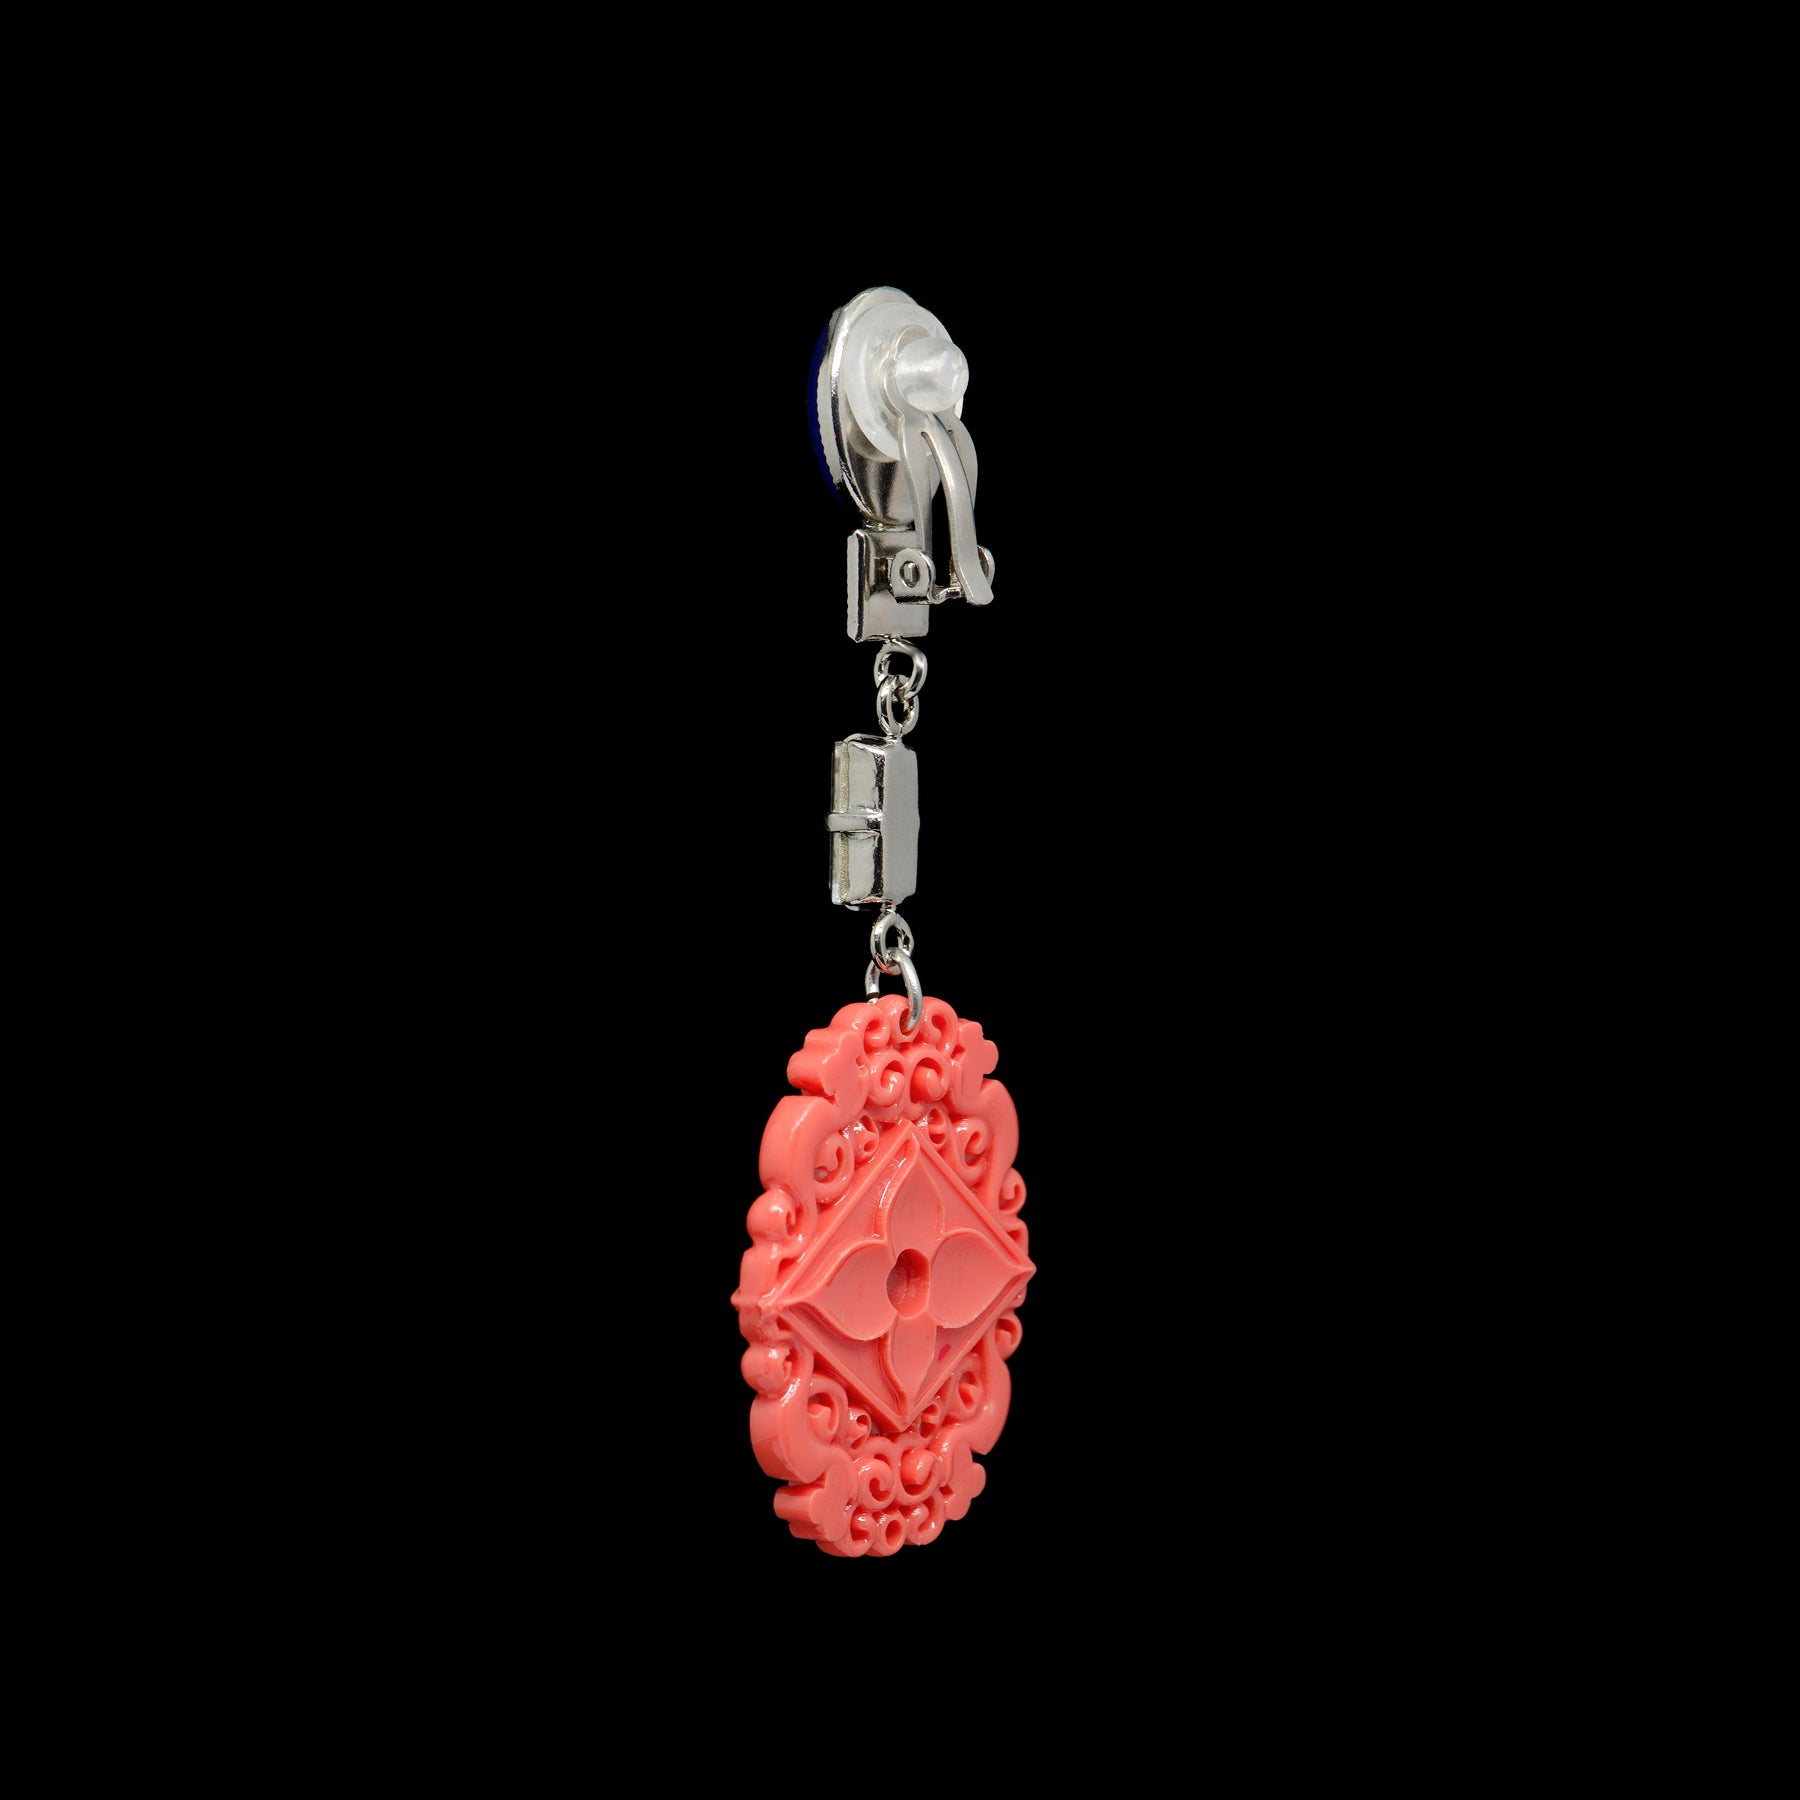 Philippe Ferrandis 'Orient Express' Lavender and Coral Clip-on Earrings (ORE 109/1) back